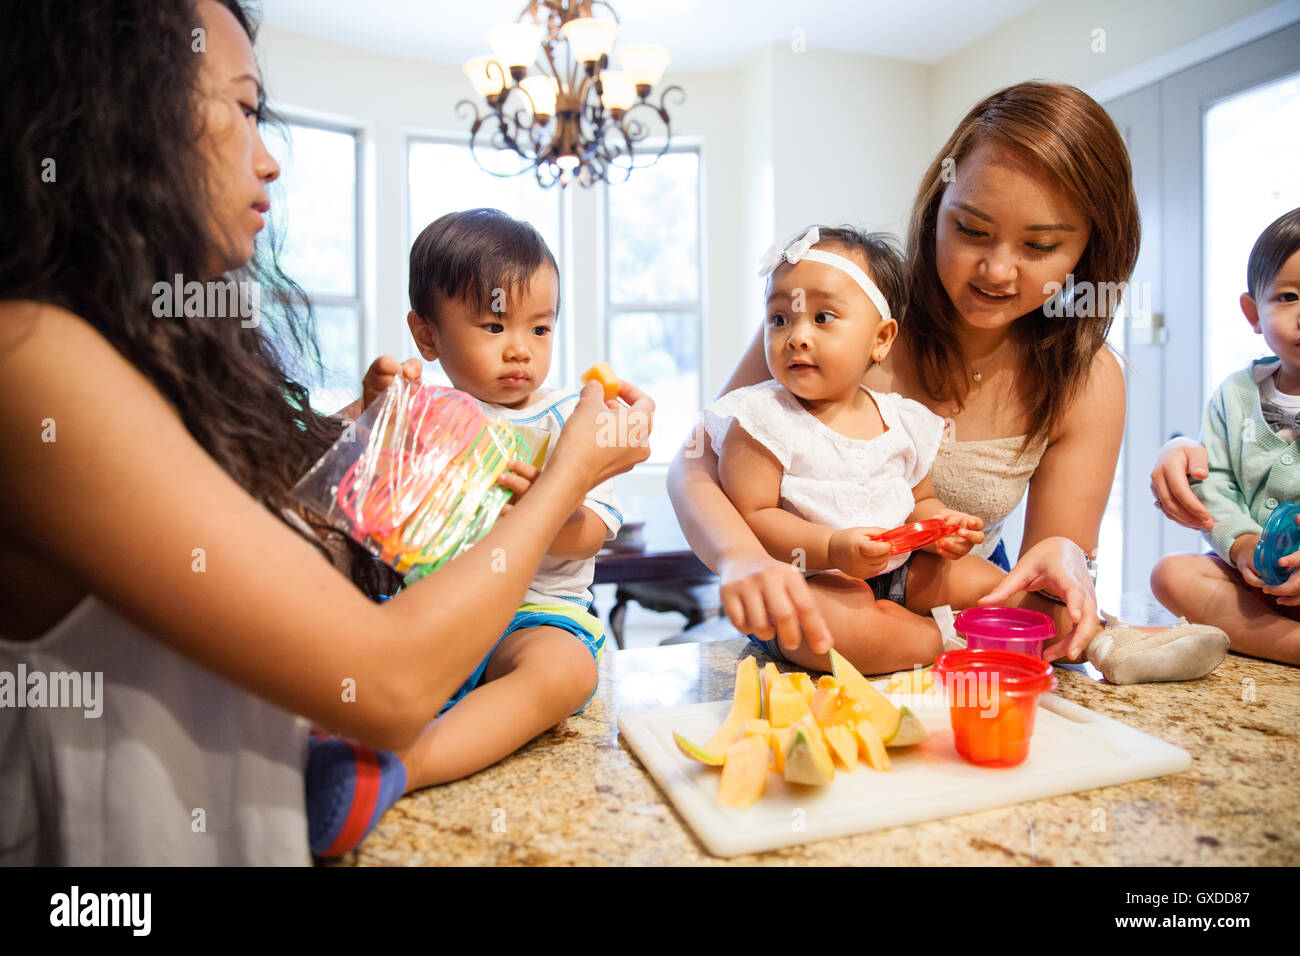 Women feeding baby son and daughter fruit on kitchen counter Stock Photo